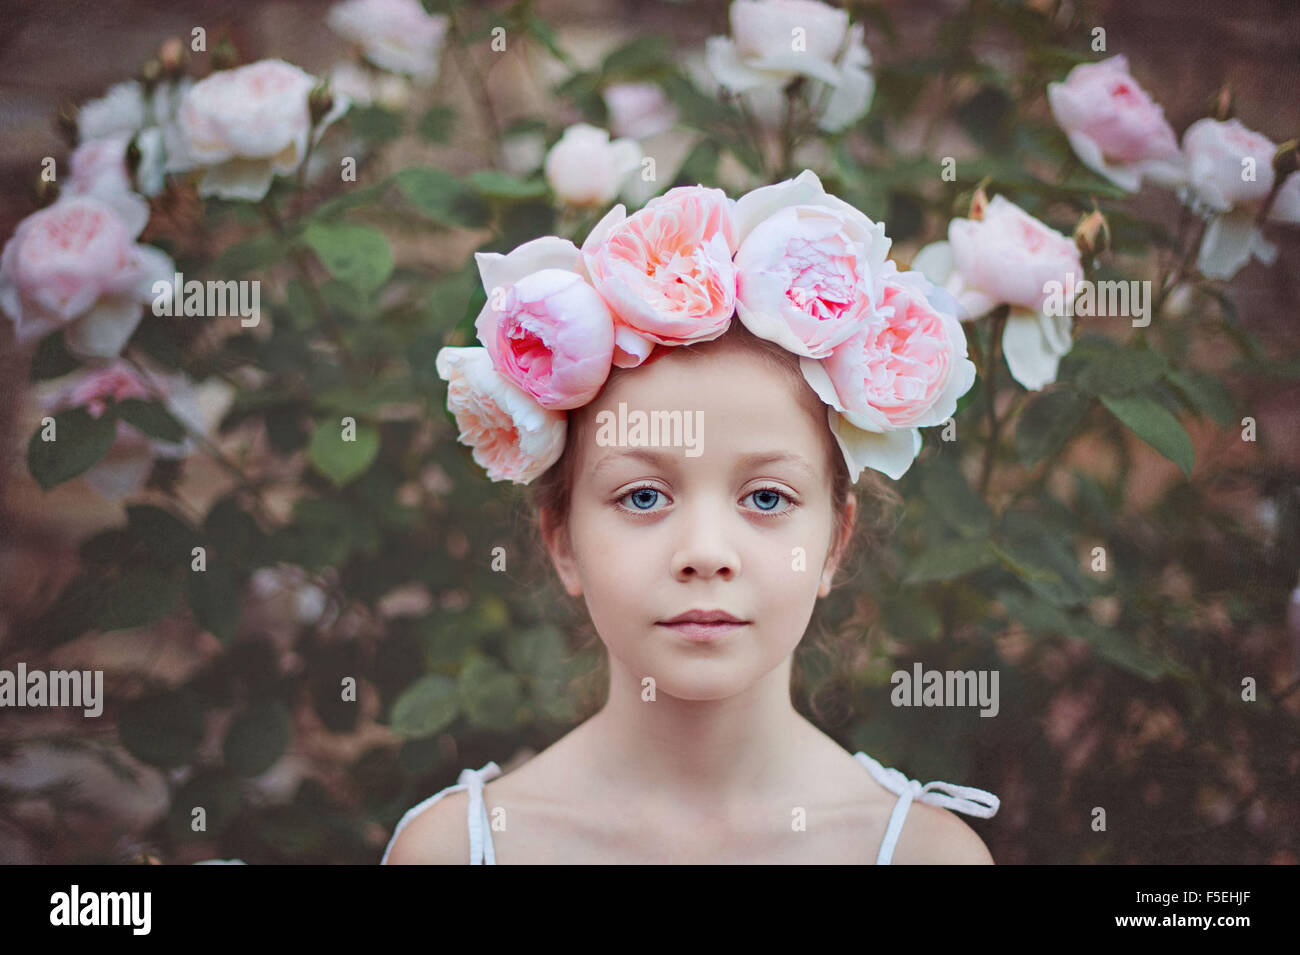 Girl wearing a headdress with roses - Stock Image